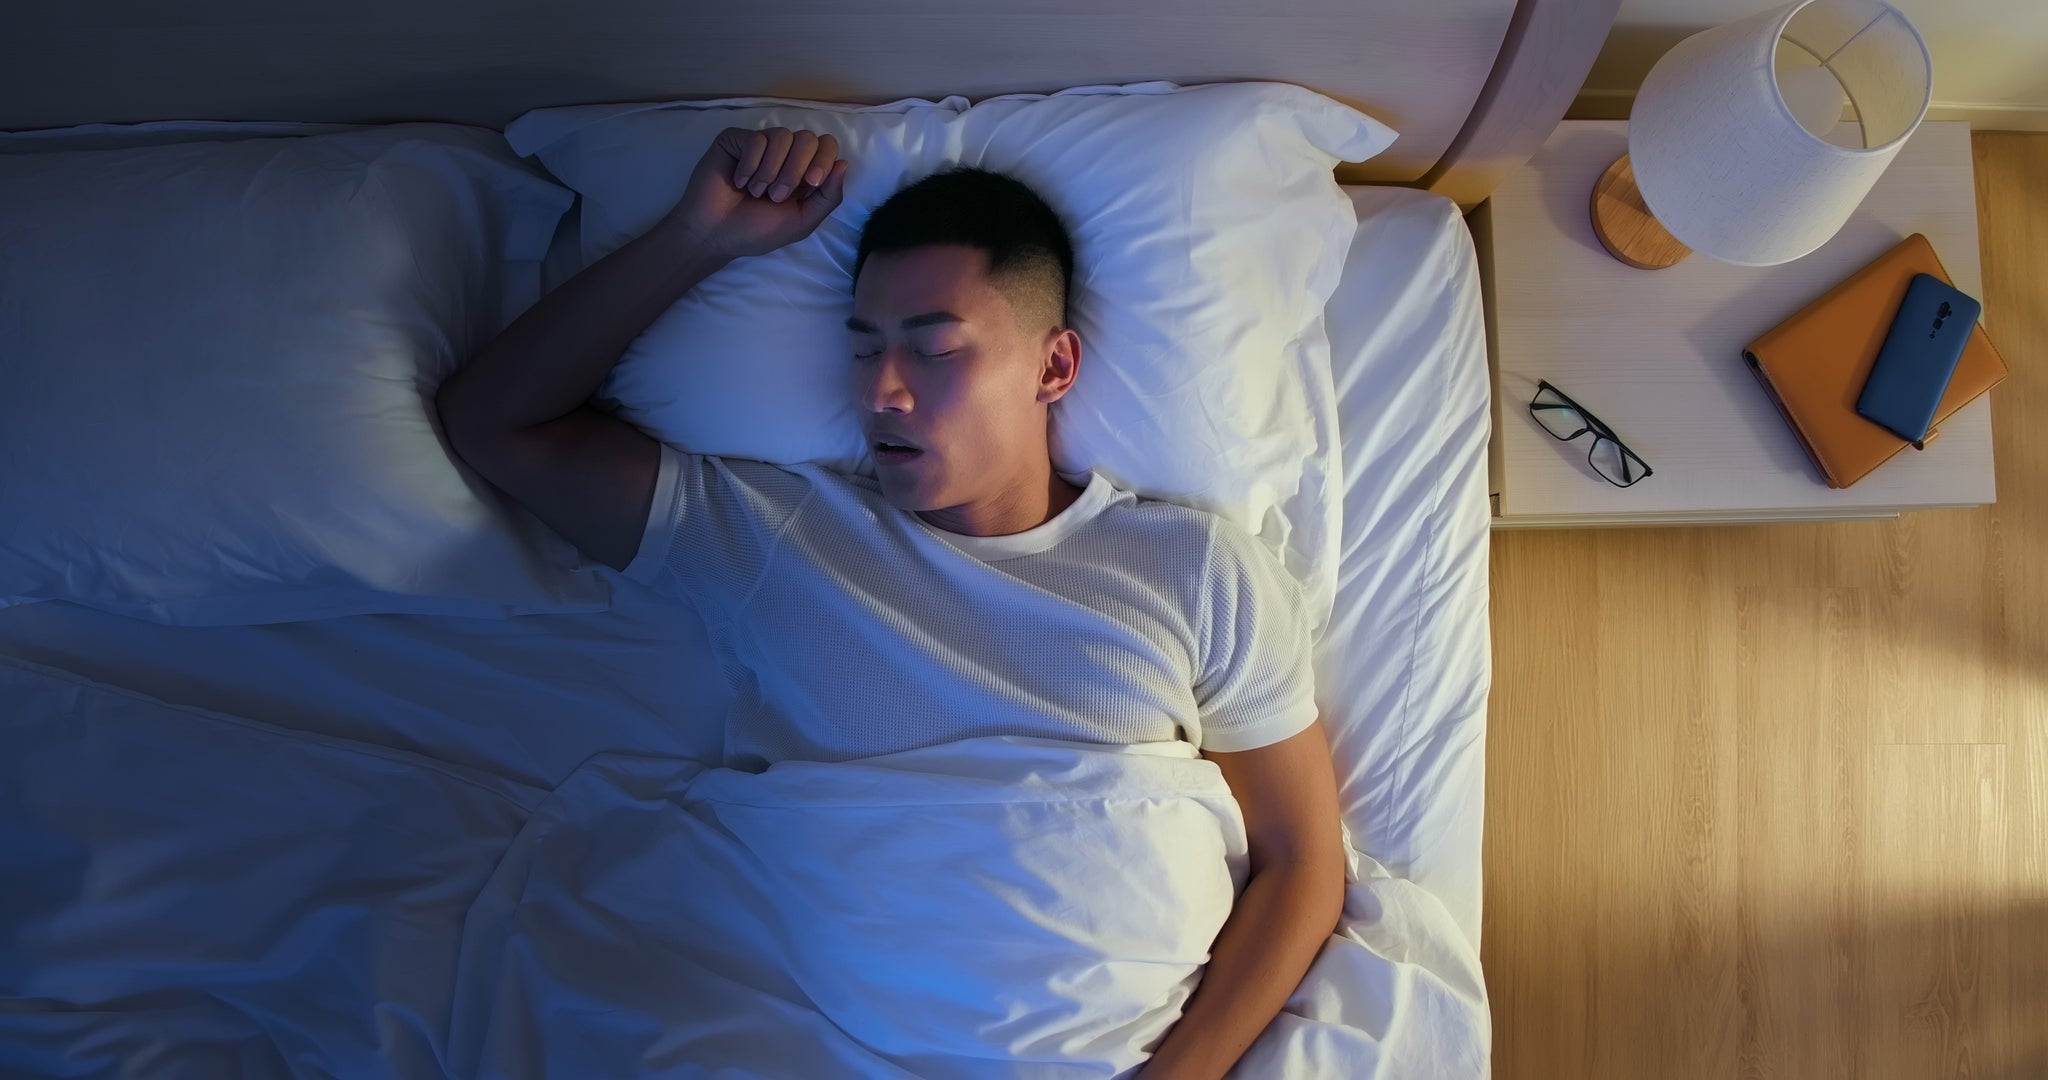 Young man soundly asleep in bed